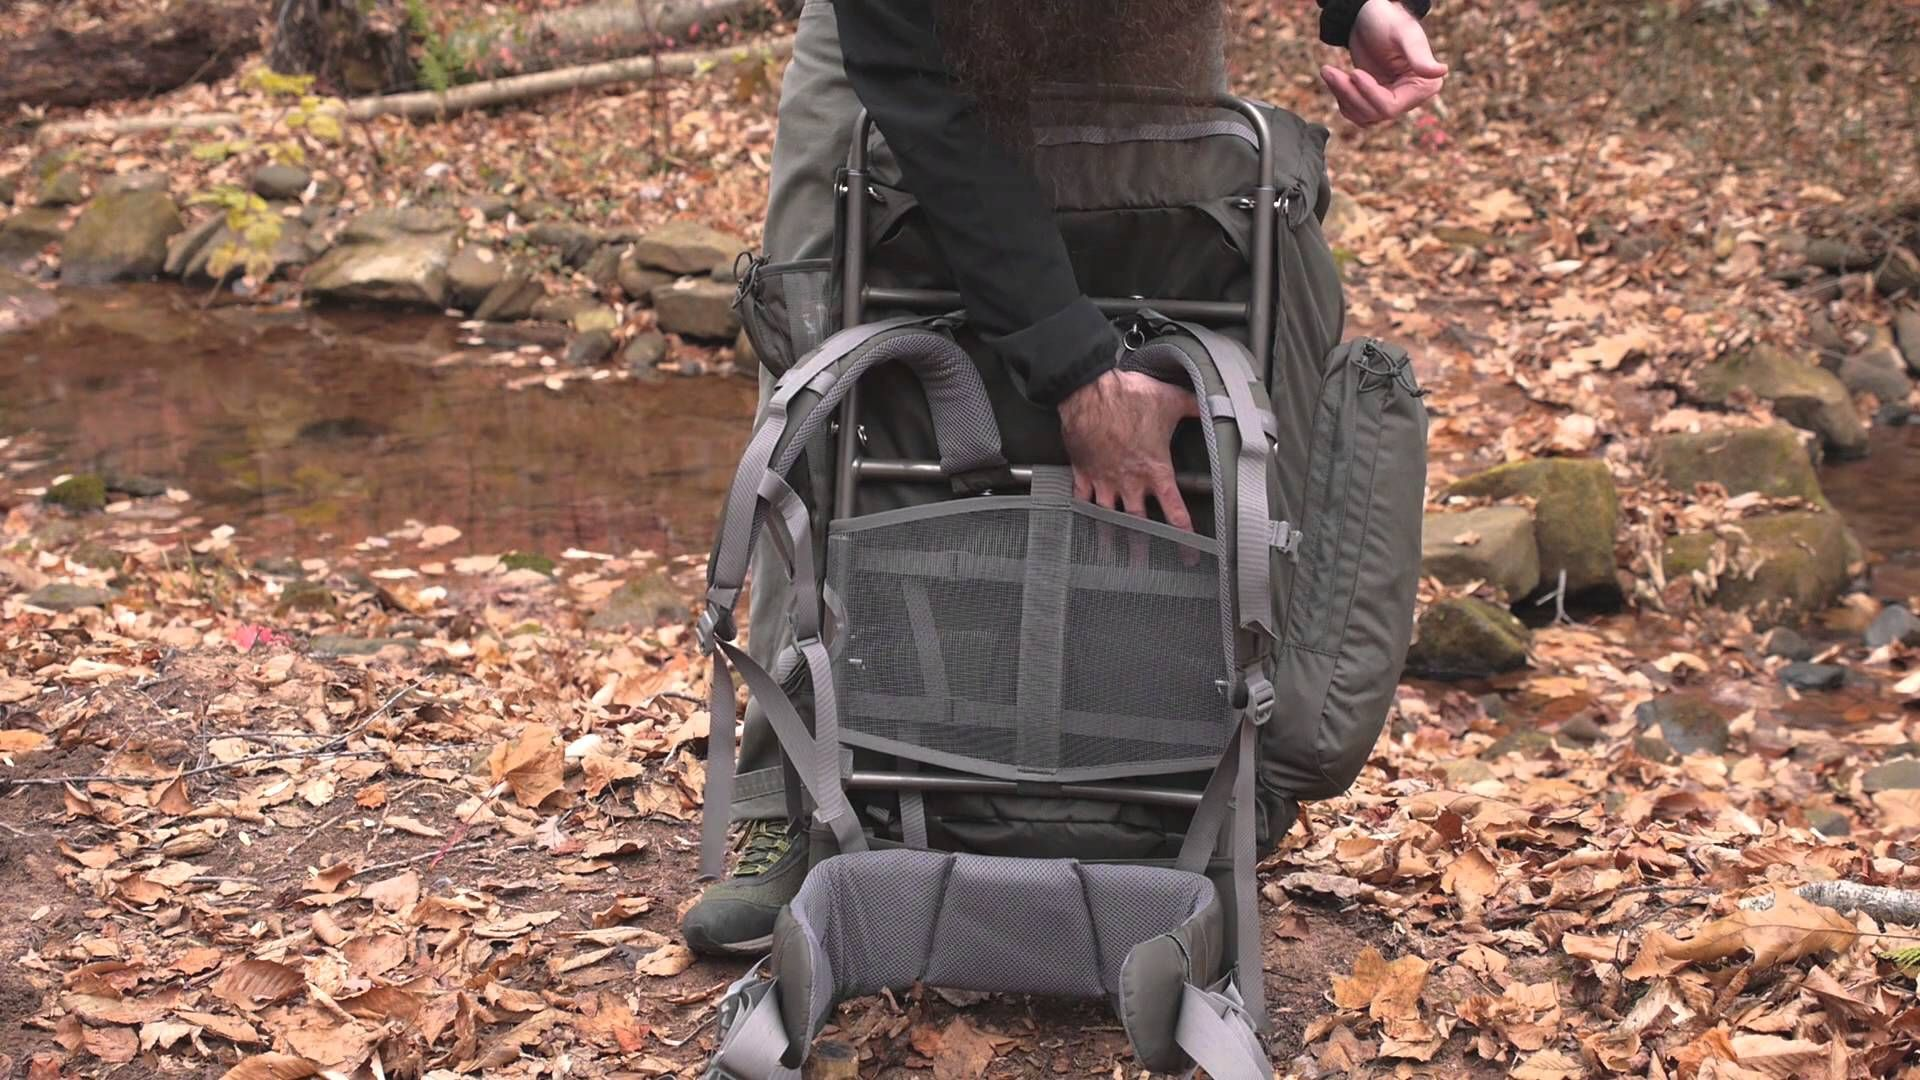 Kelty Tioga 5500 Classic External Frame Backpack | Survival/Camping ...